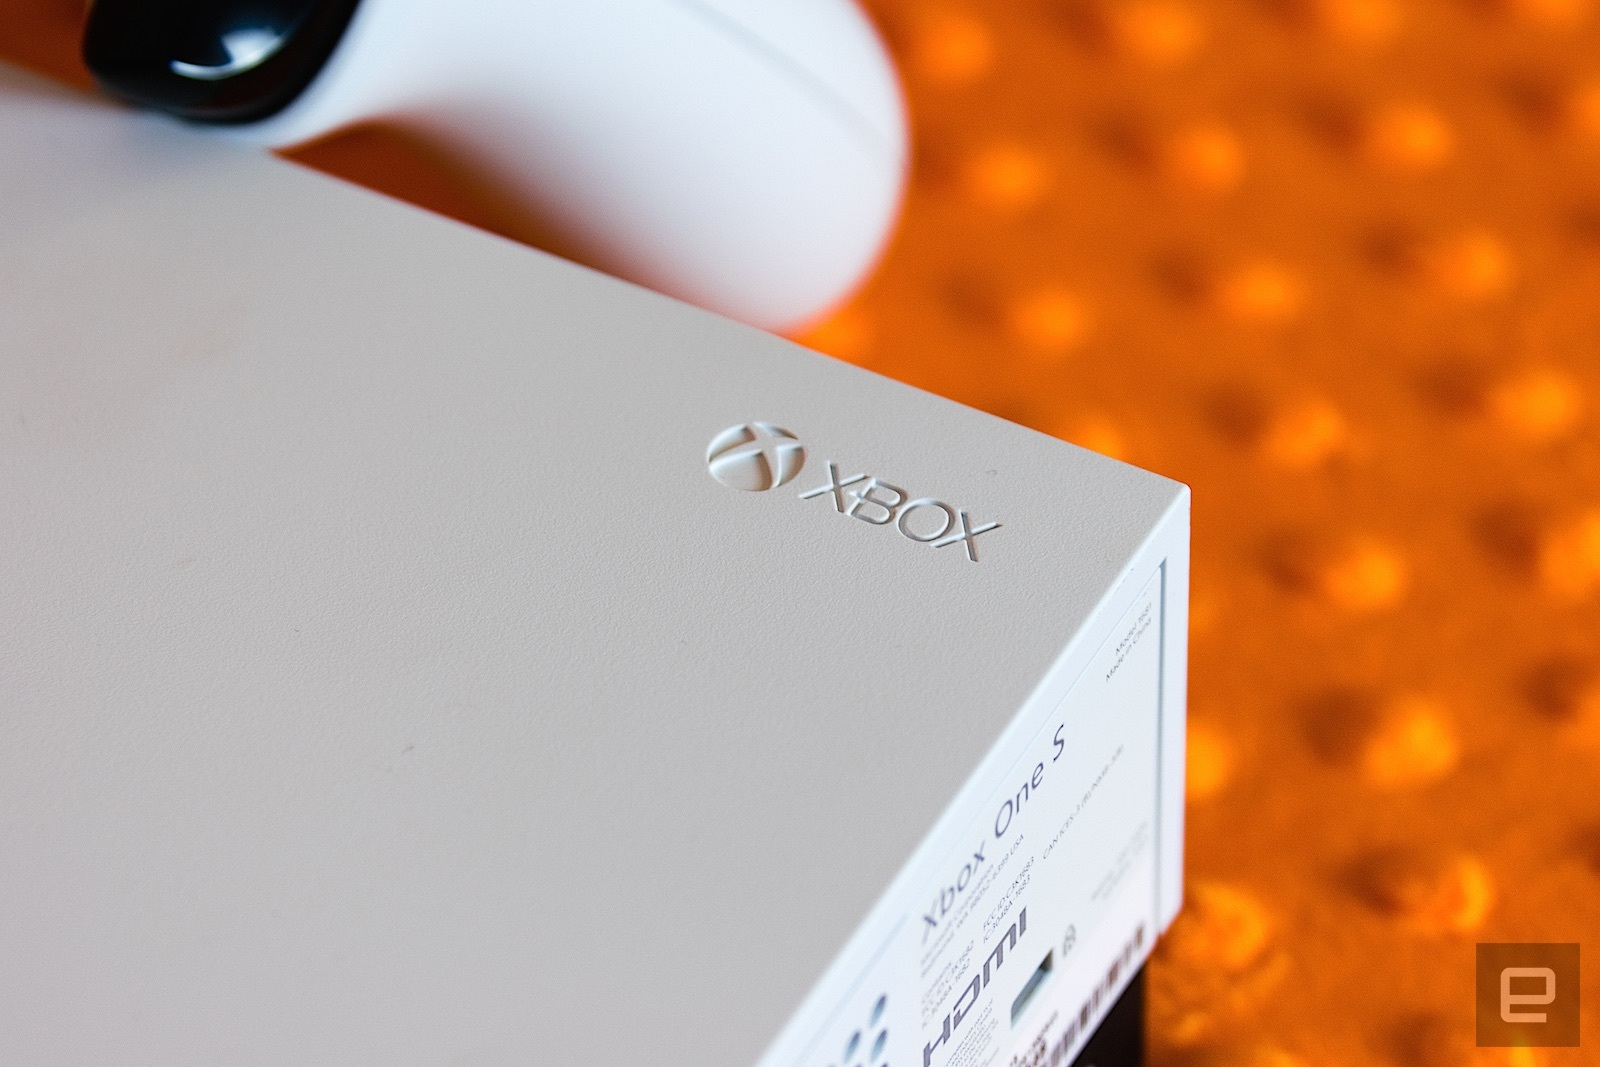 Microsoft Think This Is The End Of Console Generations xboxones 11 1